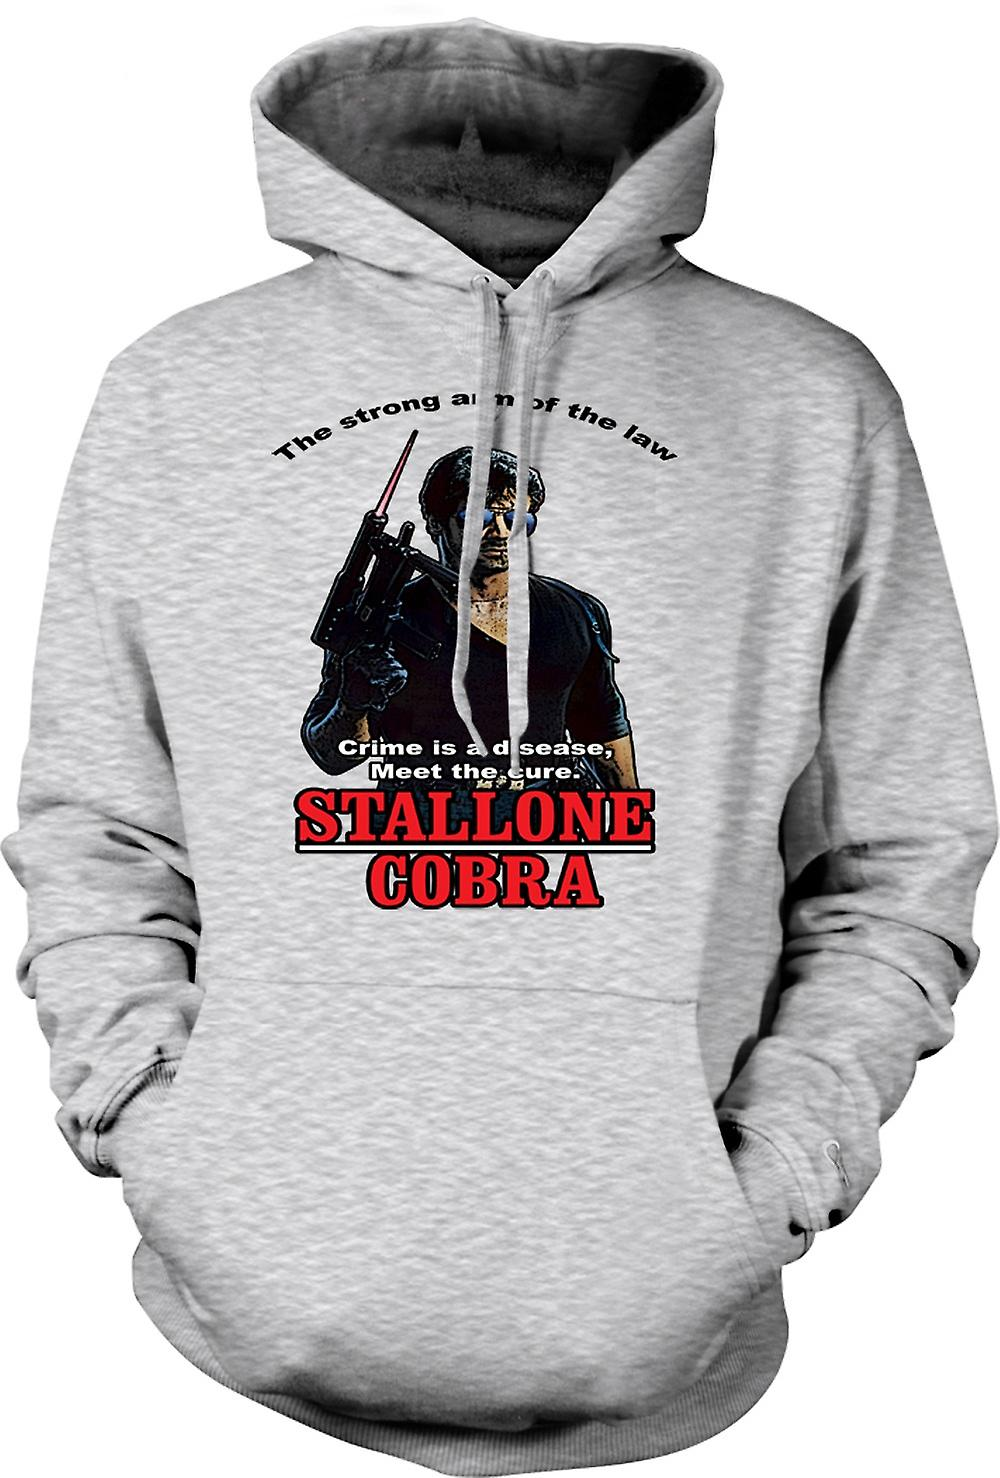 Mens Hoodie - Stallone - Cobra - Crime The Disease